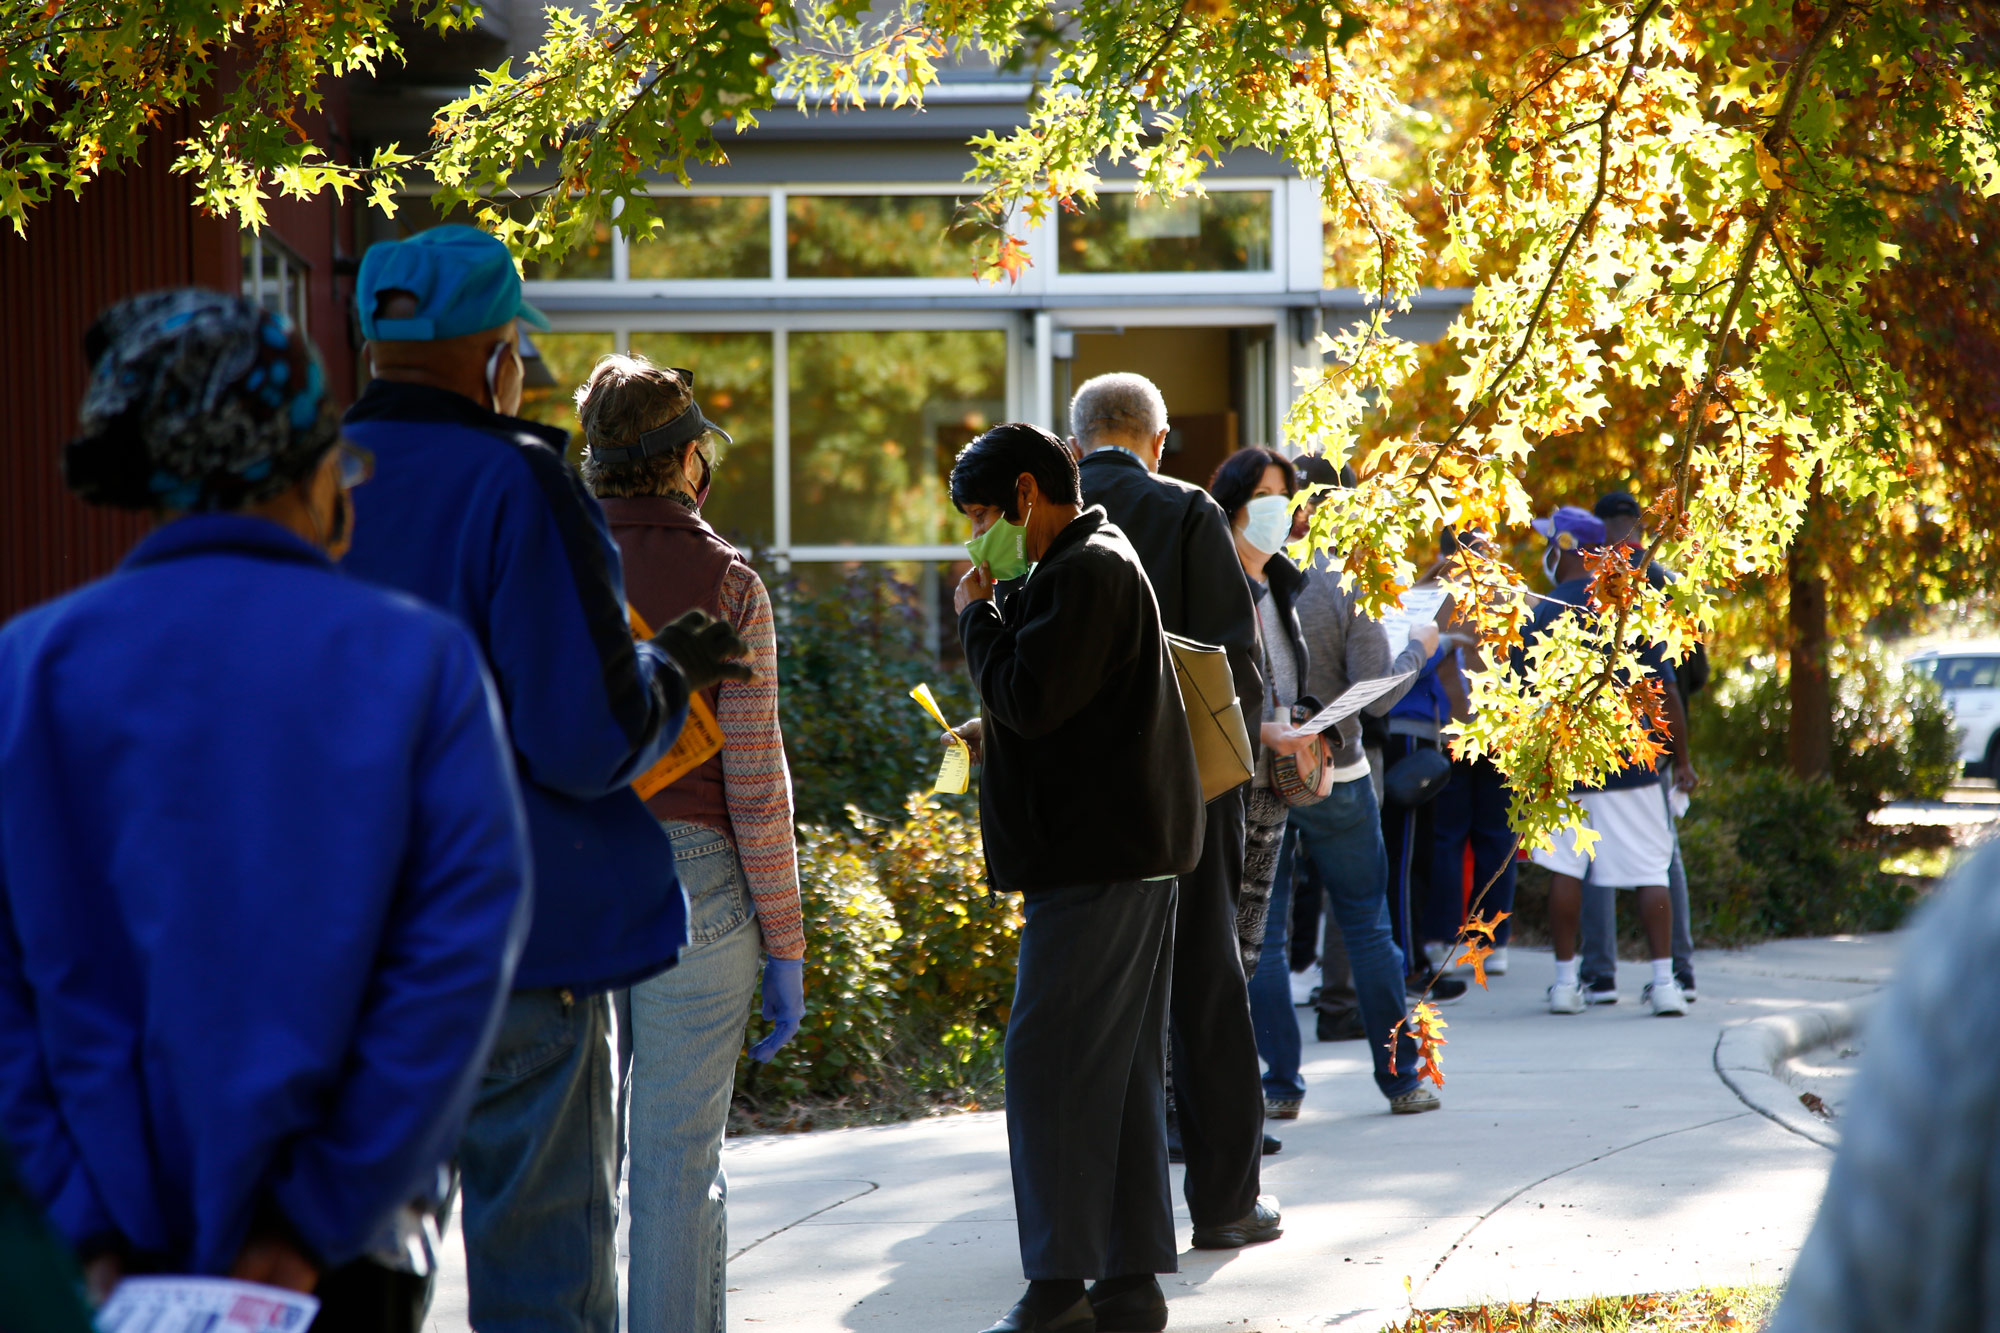 Voters wait in line to vote at a polling place at the Dr. Wesley Grant Senior Center on October 15 in Asheville, North Carolina.